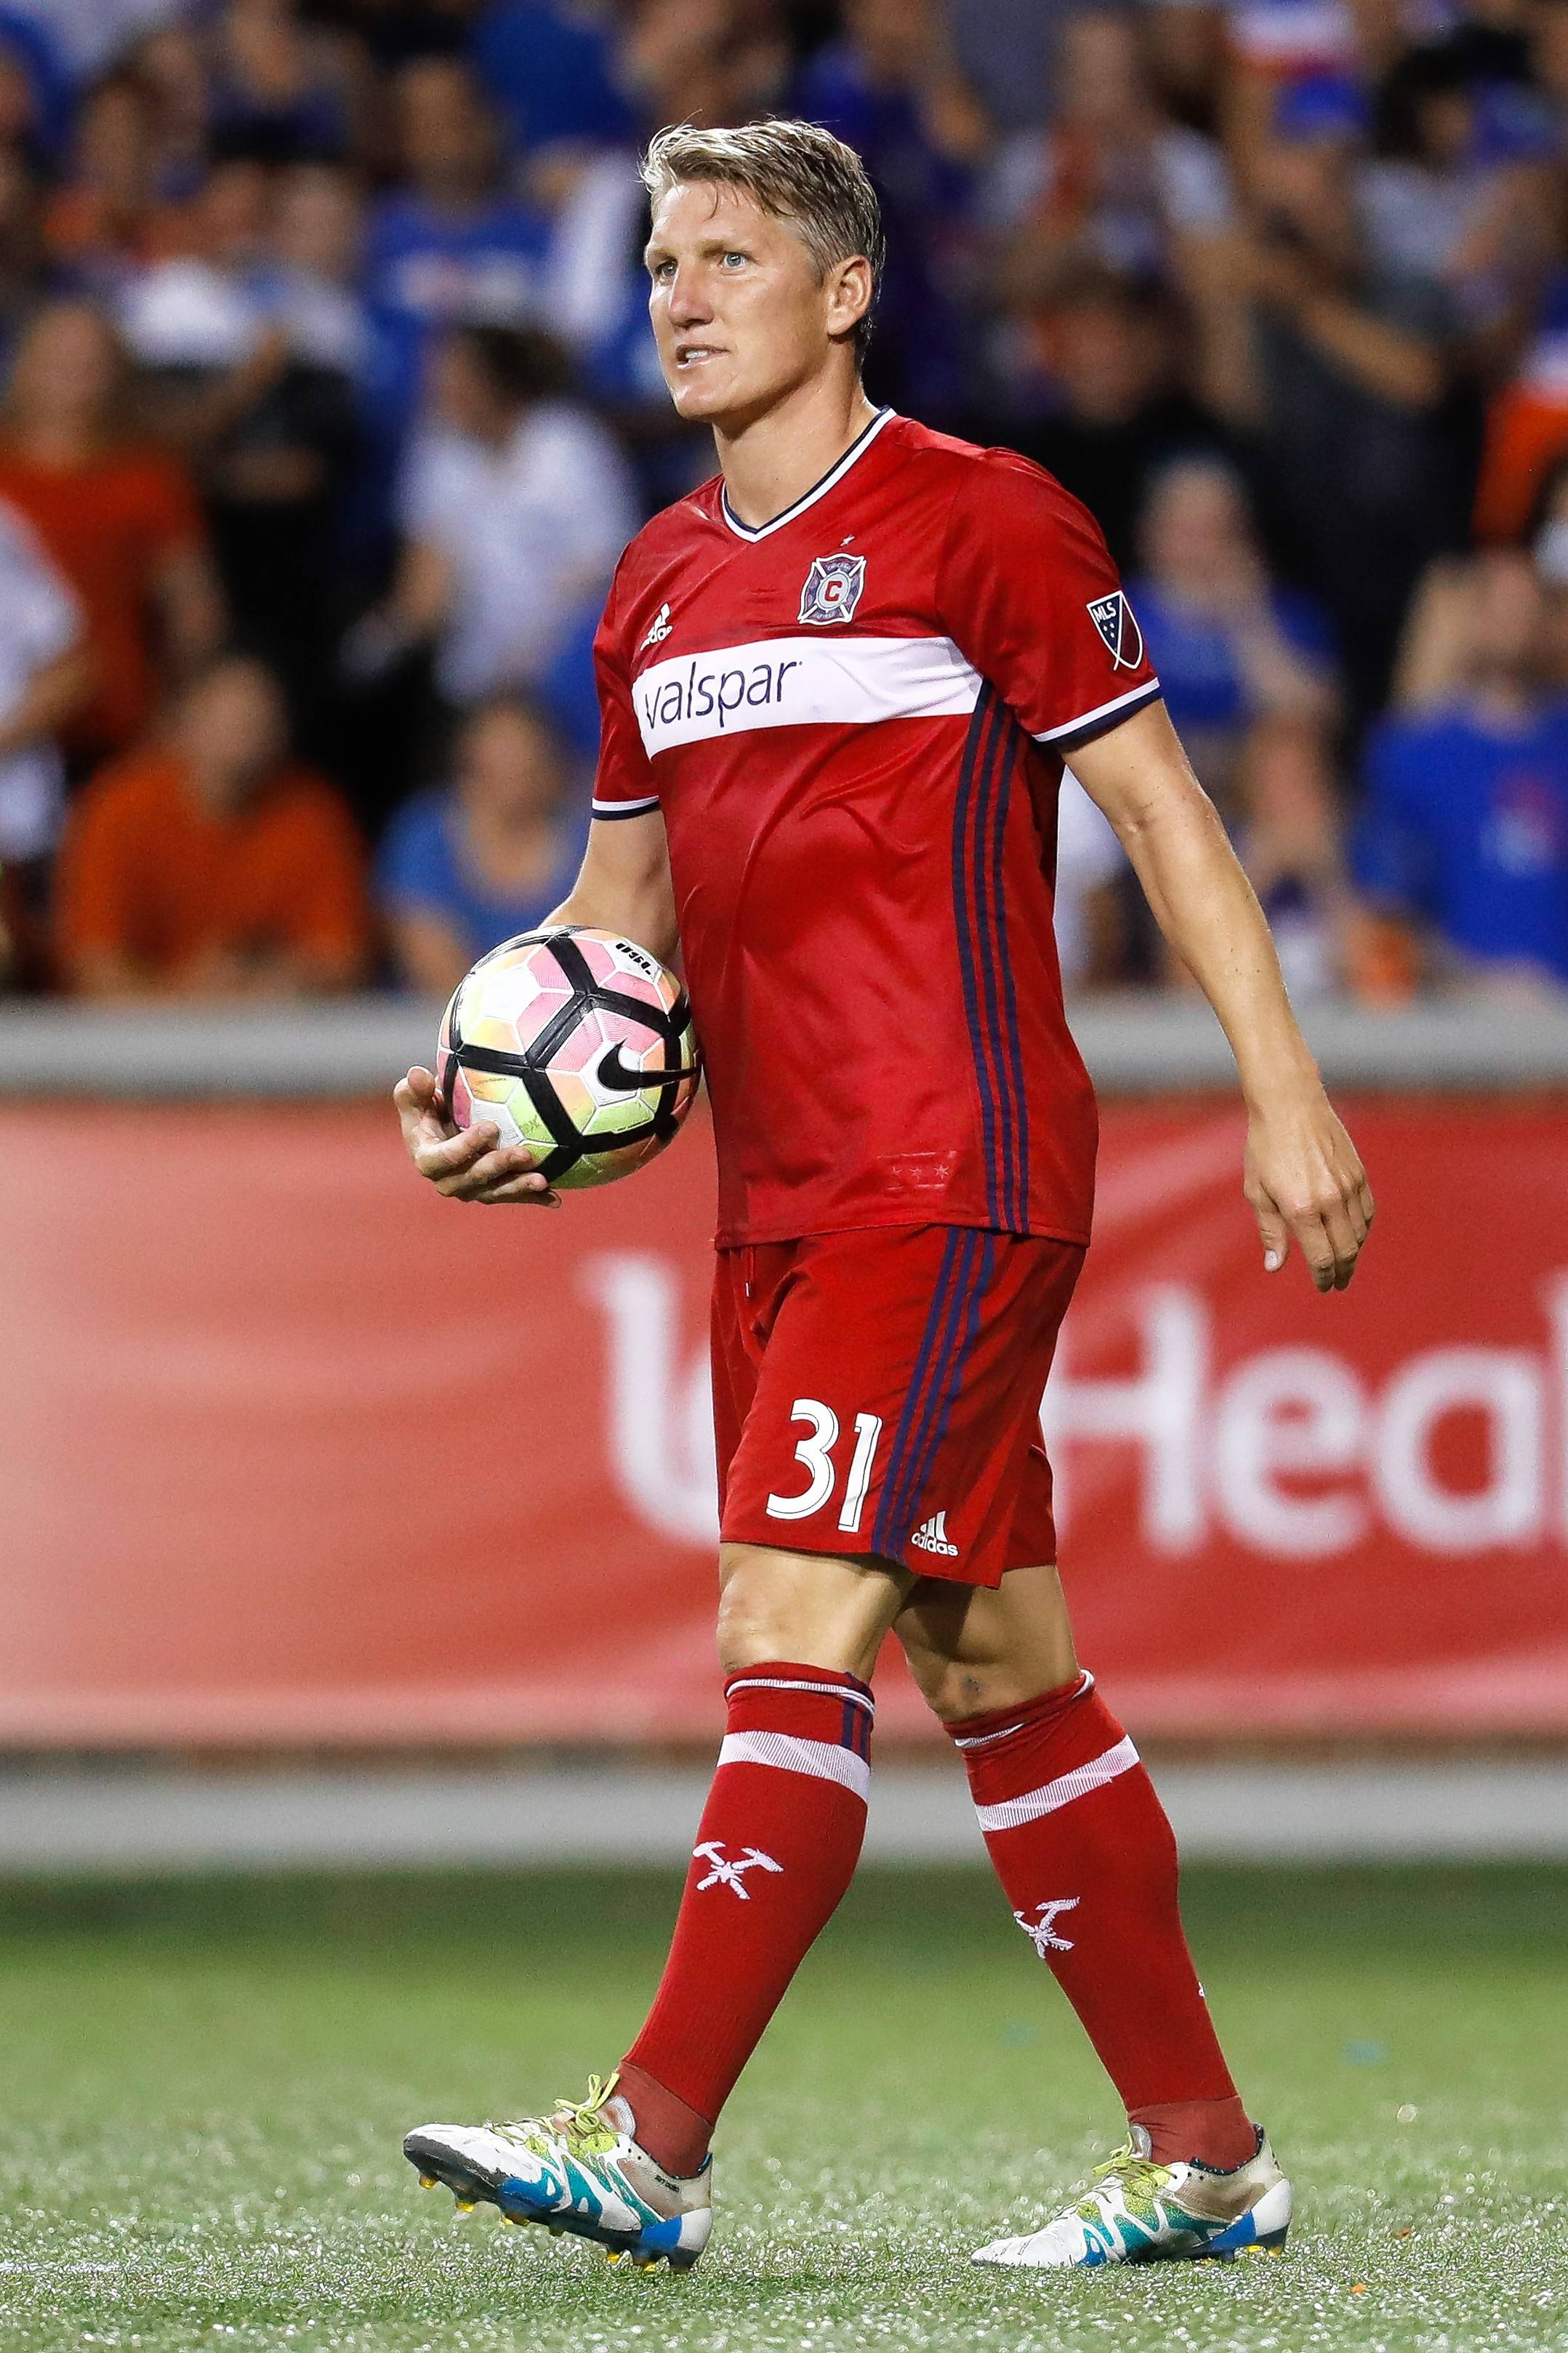 Chicago Fire officials wants to see midfielder Bastian Schweinsteiger return next season. But his with his age and injury history, they might not be able to afford his high salary.